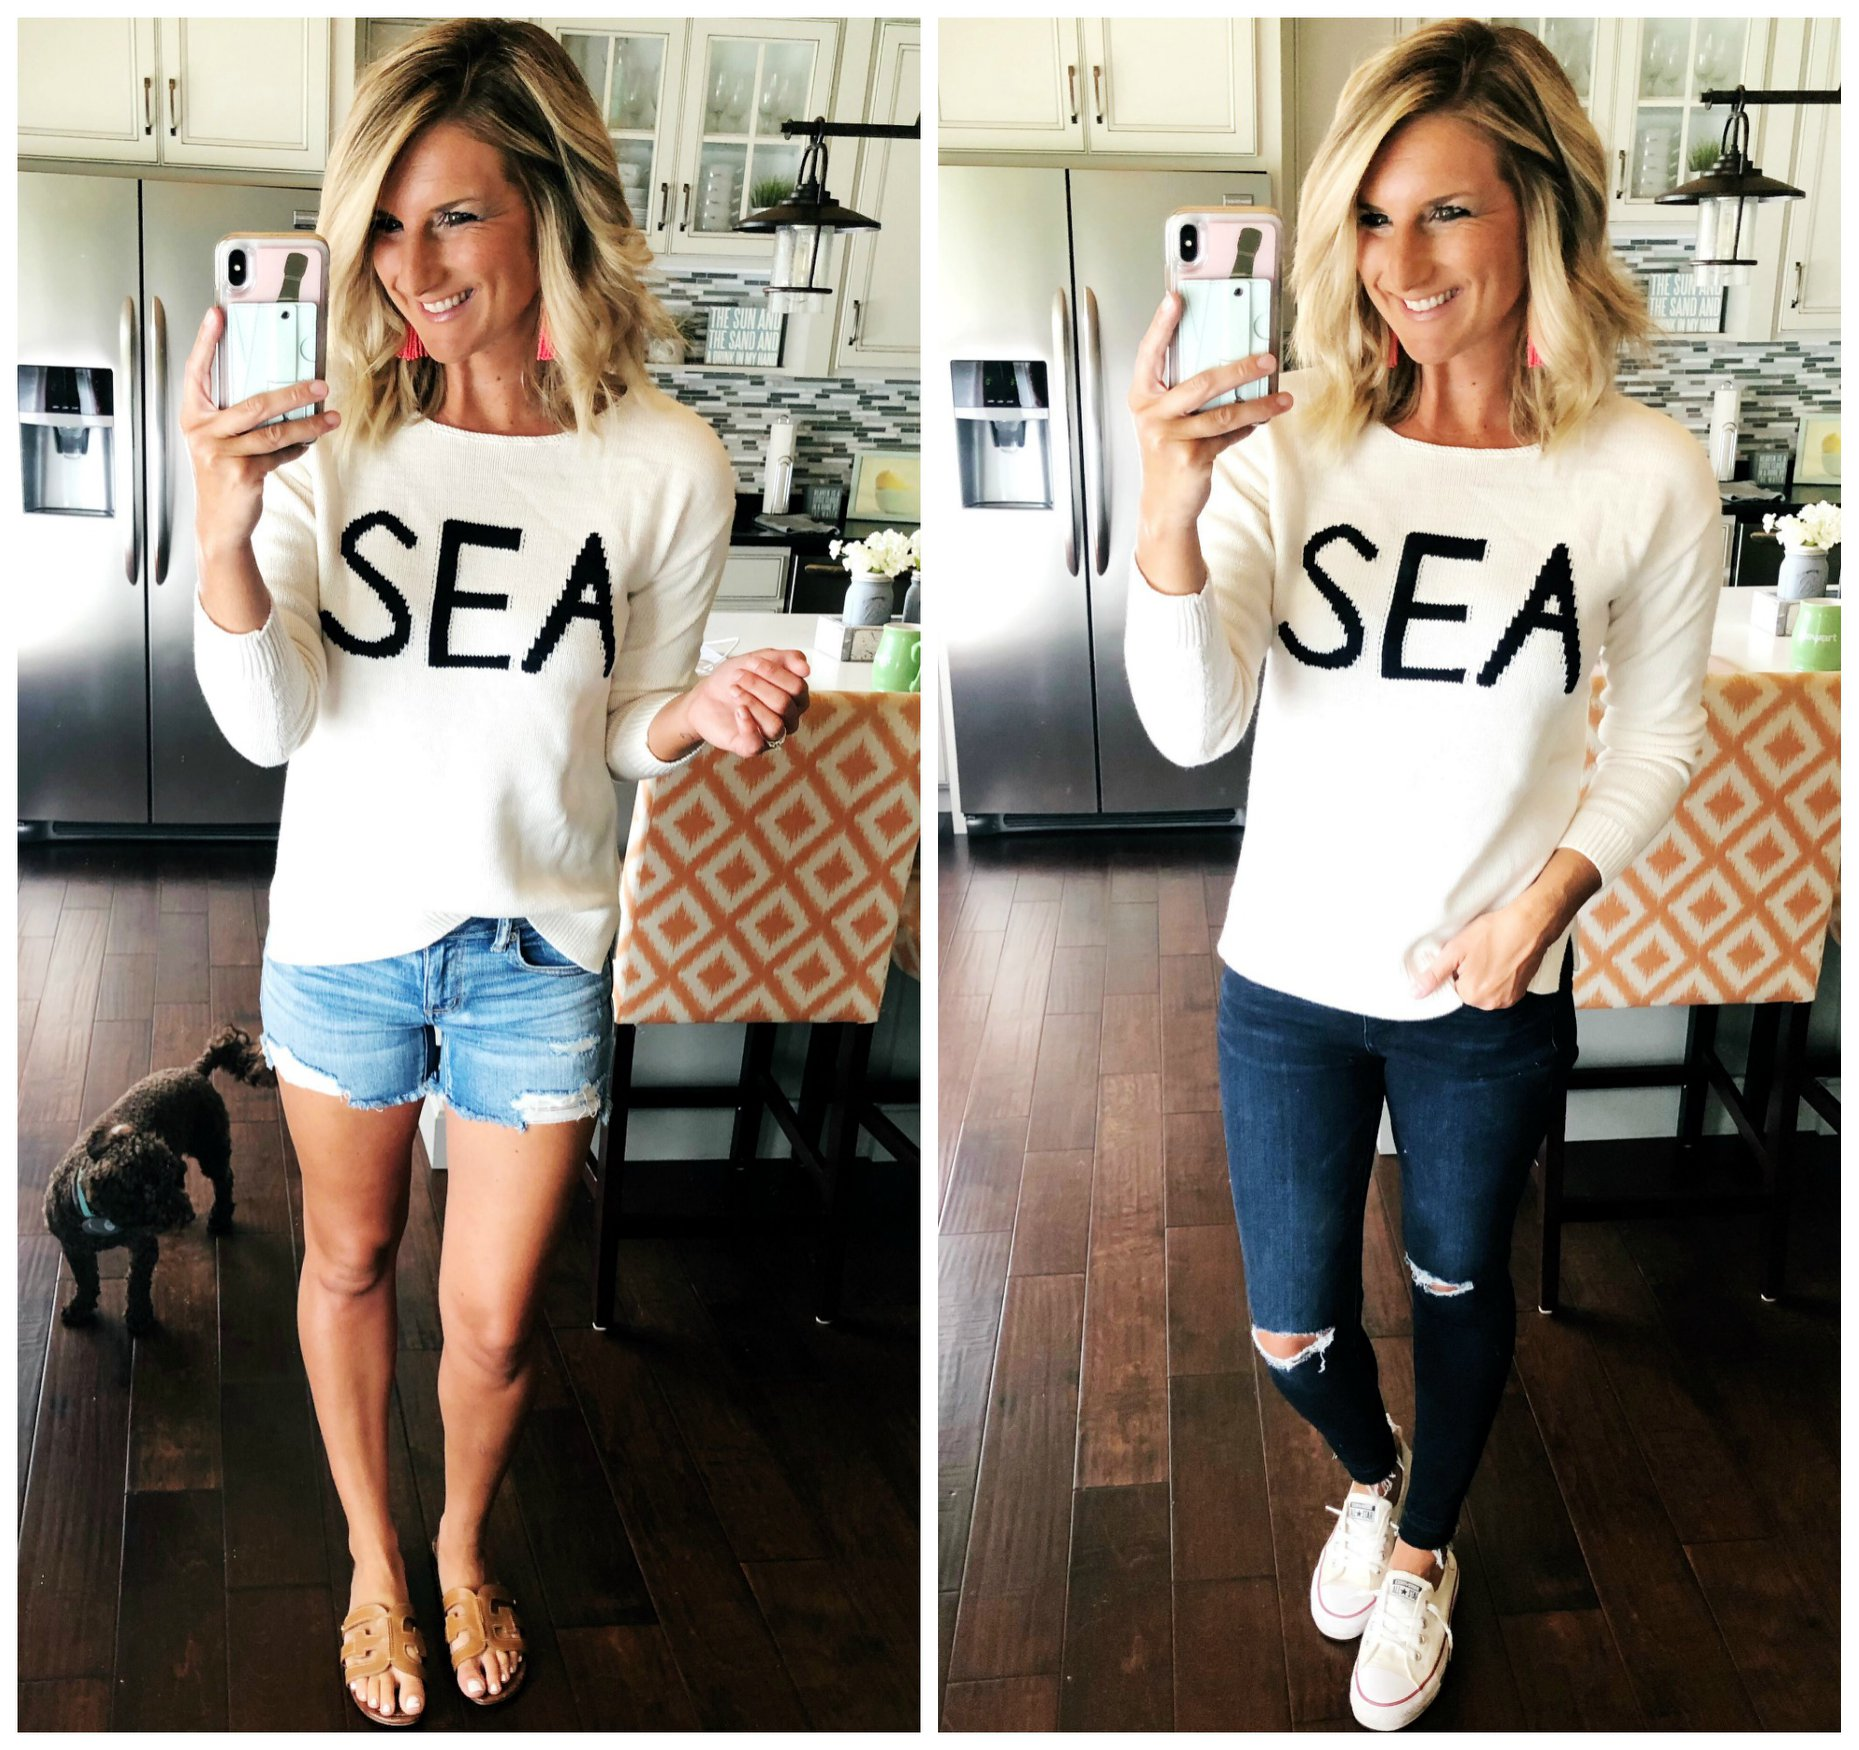 Summer Sweater // What to Wear with a Sweater in the Summer // White Sweater for cooler Summer Nights and Boat Rides // Outfit of the Day